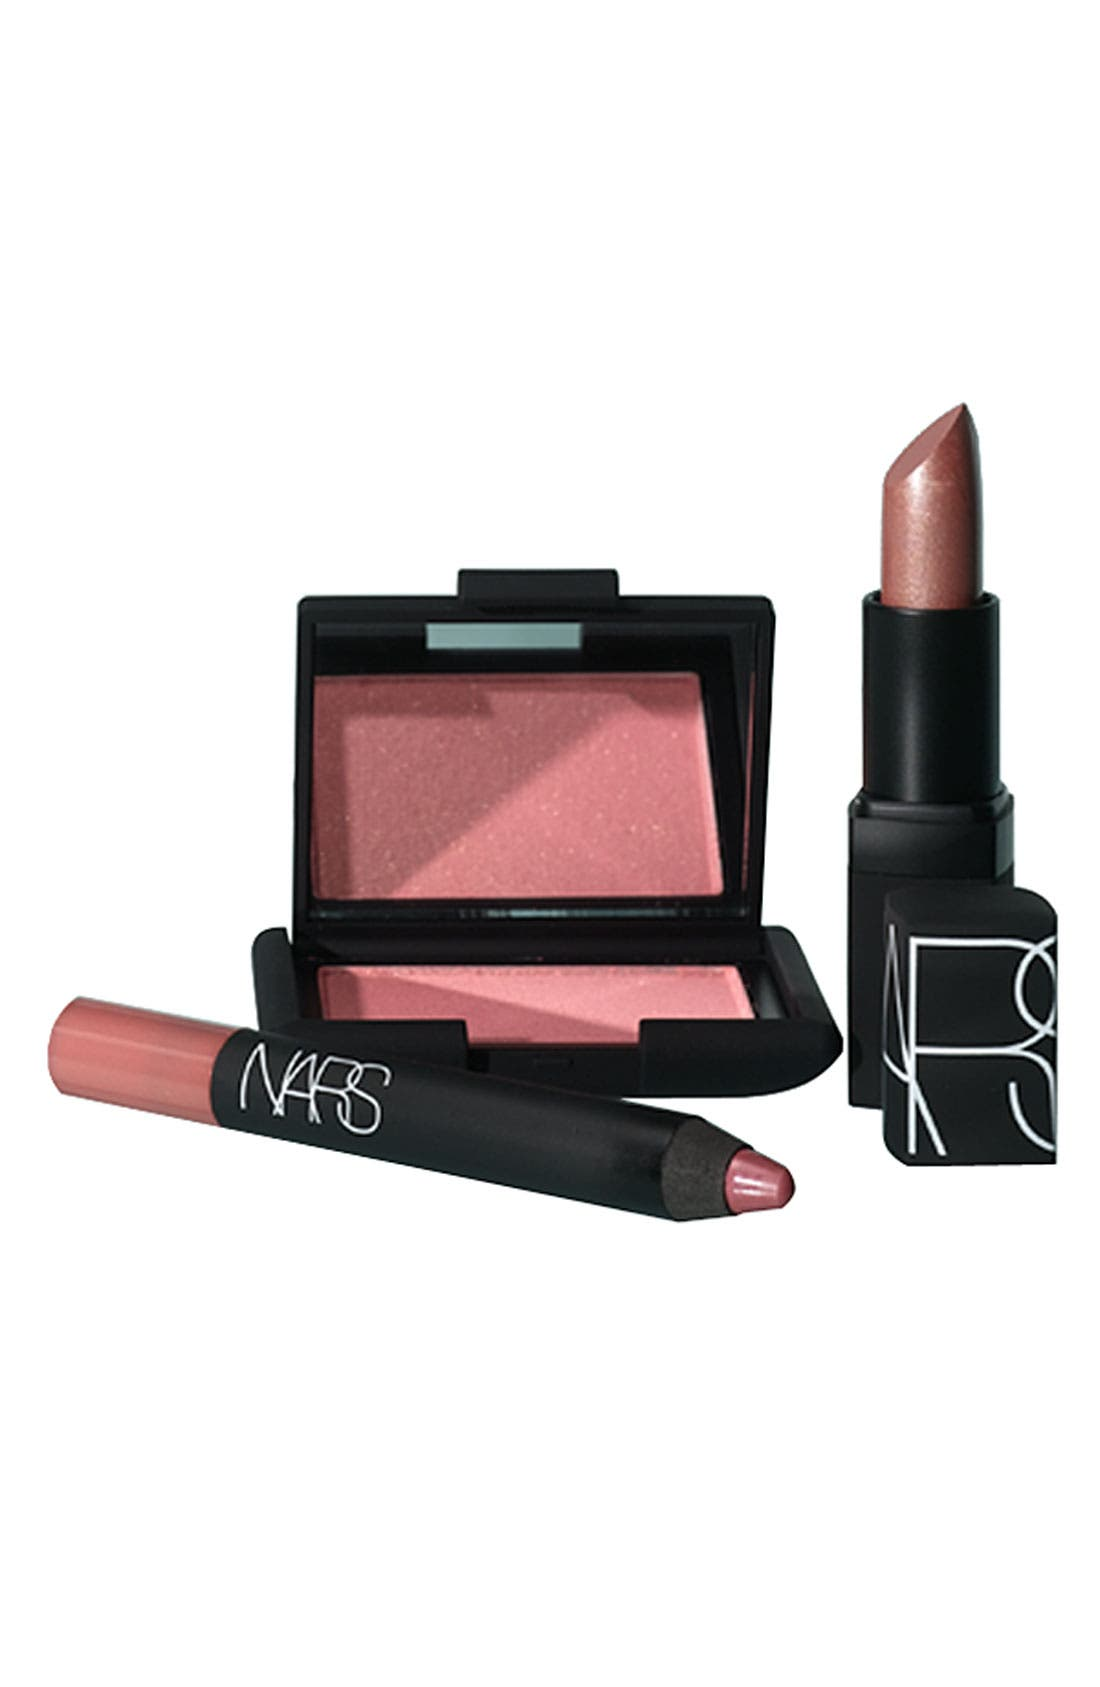 Alternate Image 1 Selected - NARS 'Love Thrill' Set ($73 Value)